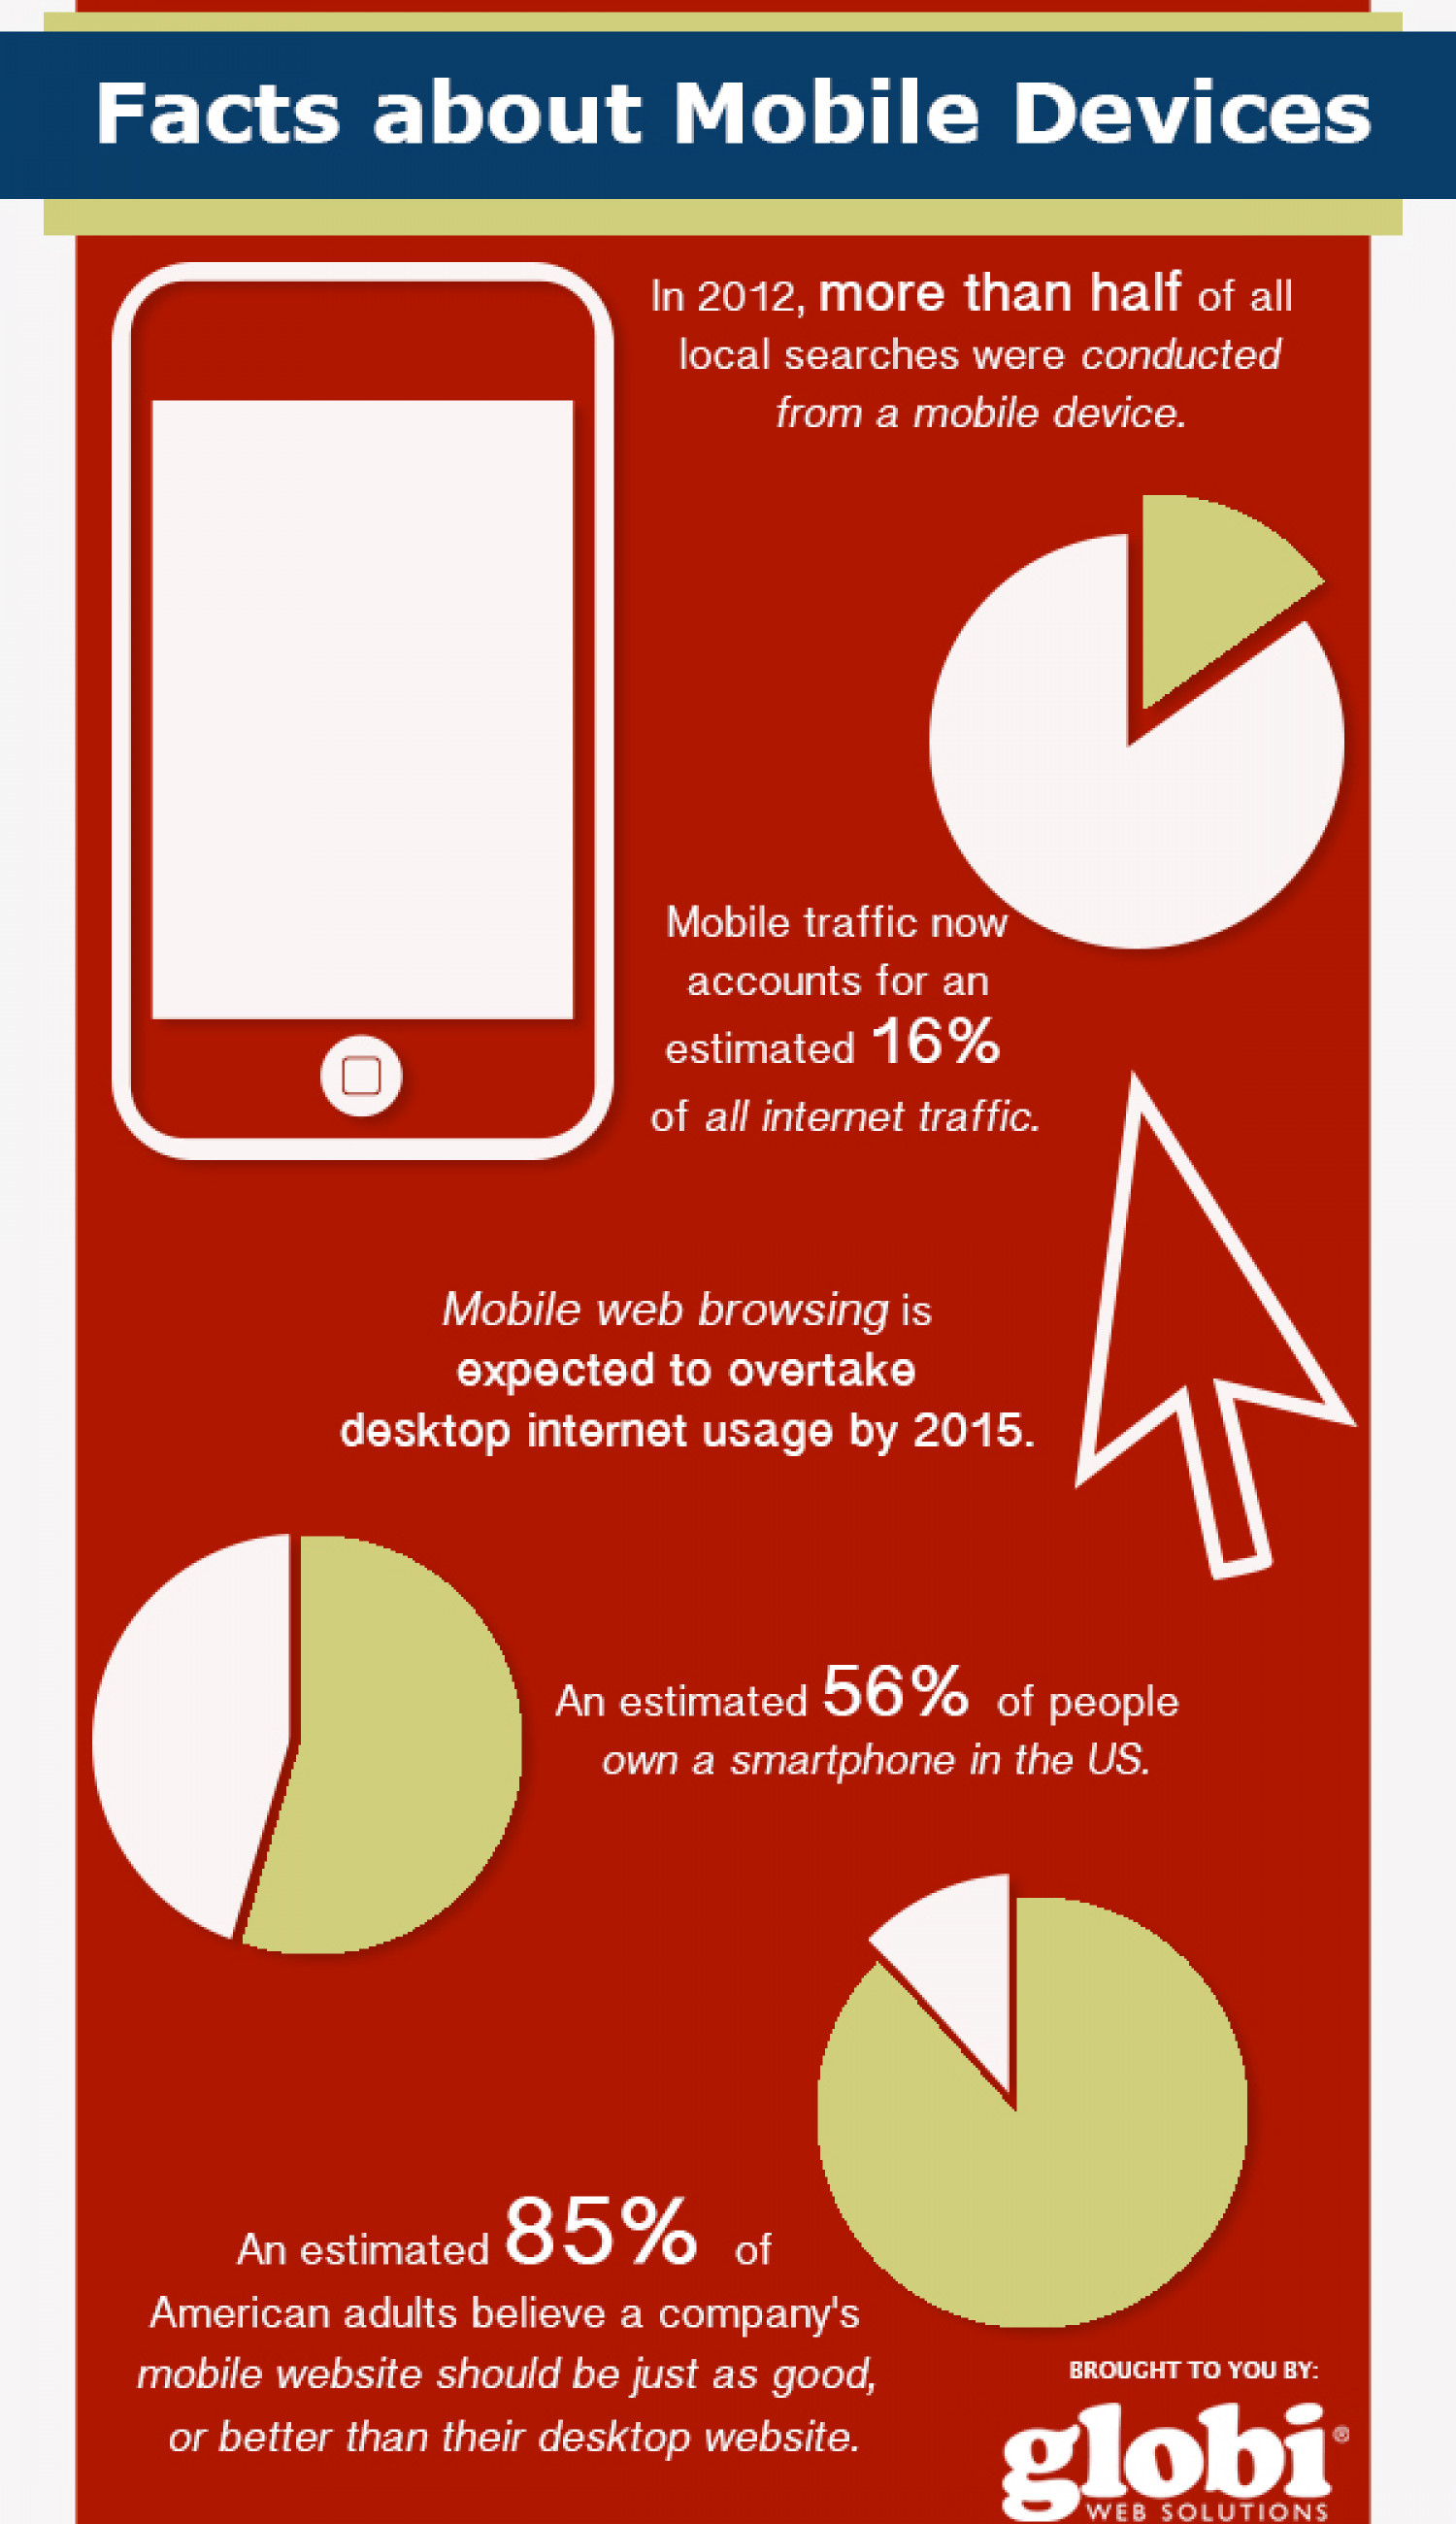 Facts About Mobile Devices Infographic